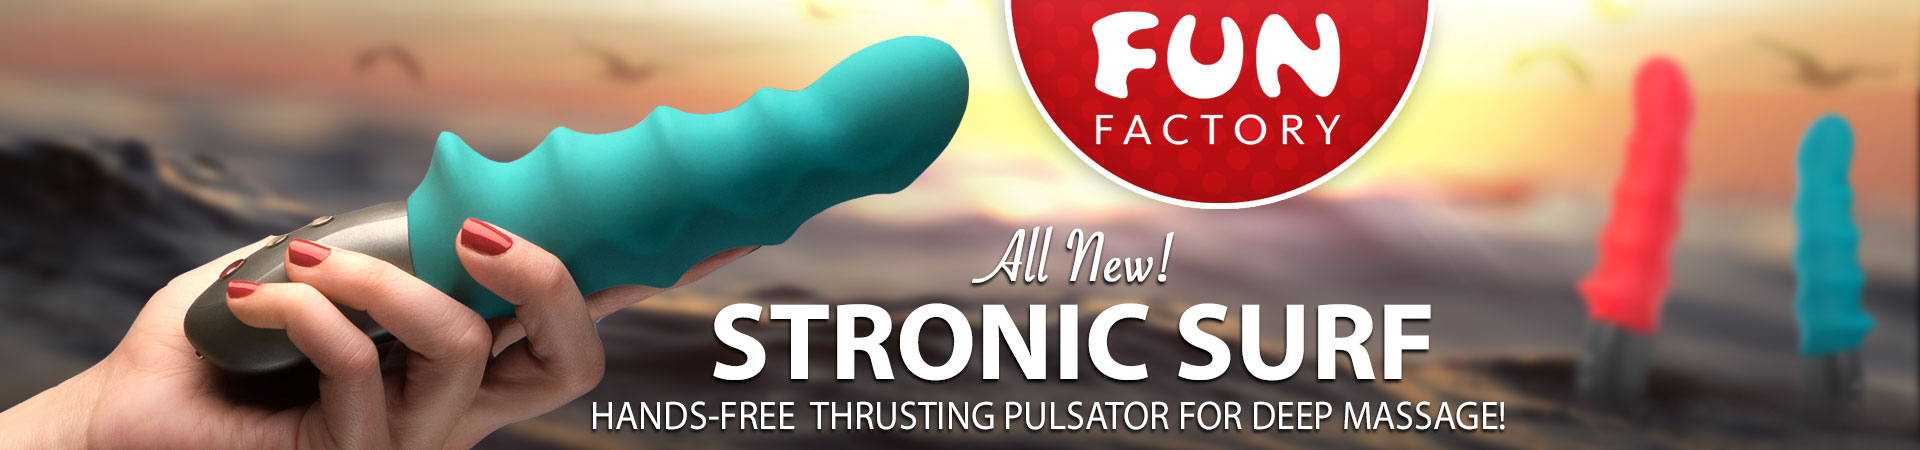 New Stronic Surf By Fun Factory! Hands-Free Thrusting Pulsator For Deep Massage!